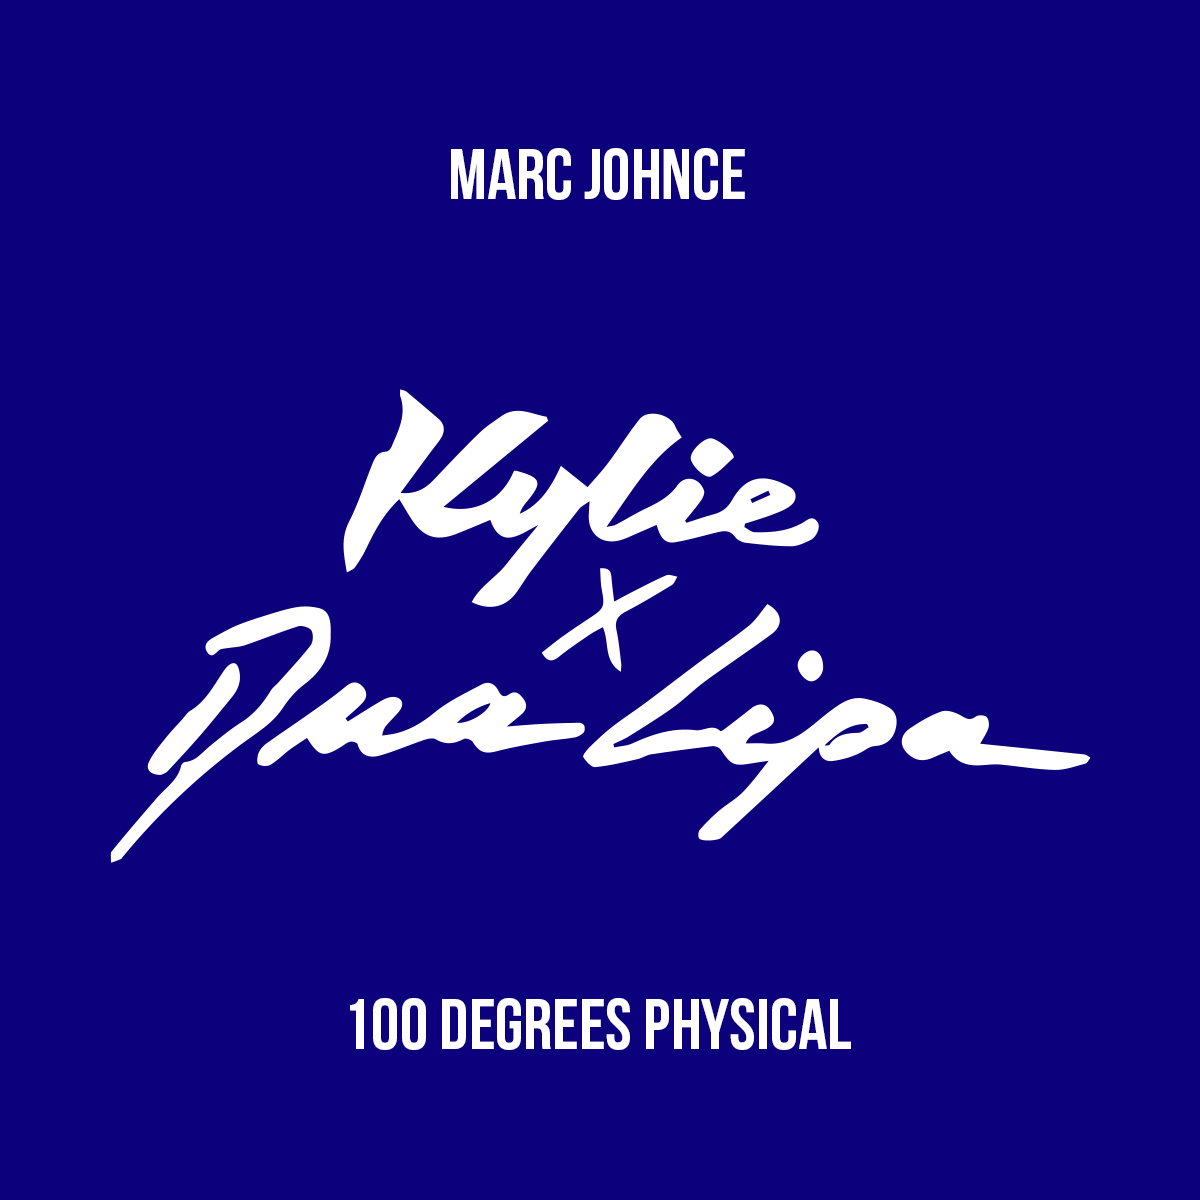 Marc Johnce - 100 Degrees Physical